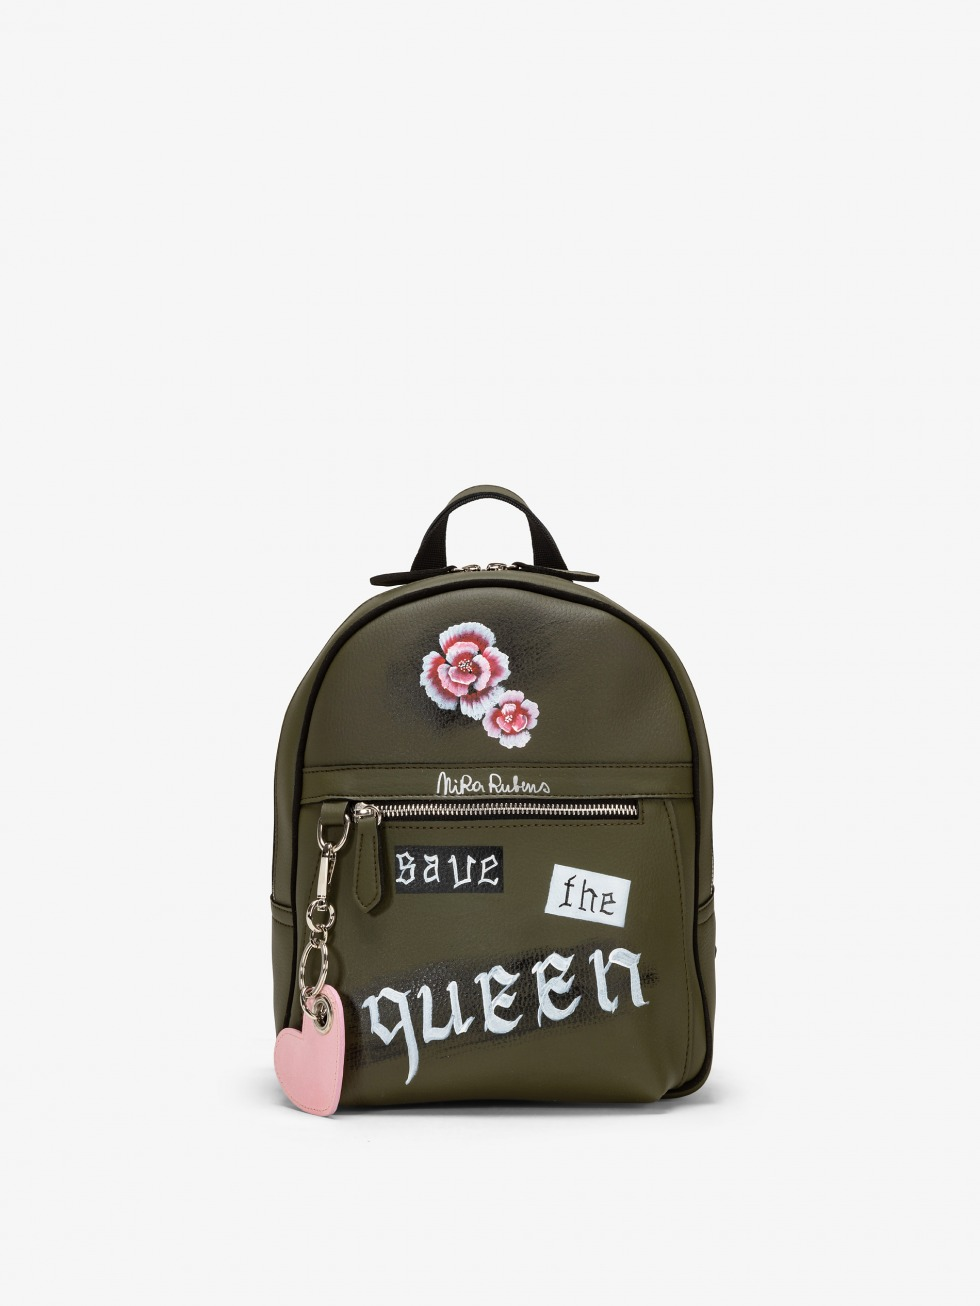 EASY PACK - MILITARY SAVE THE QUEEN